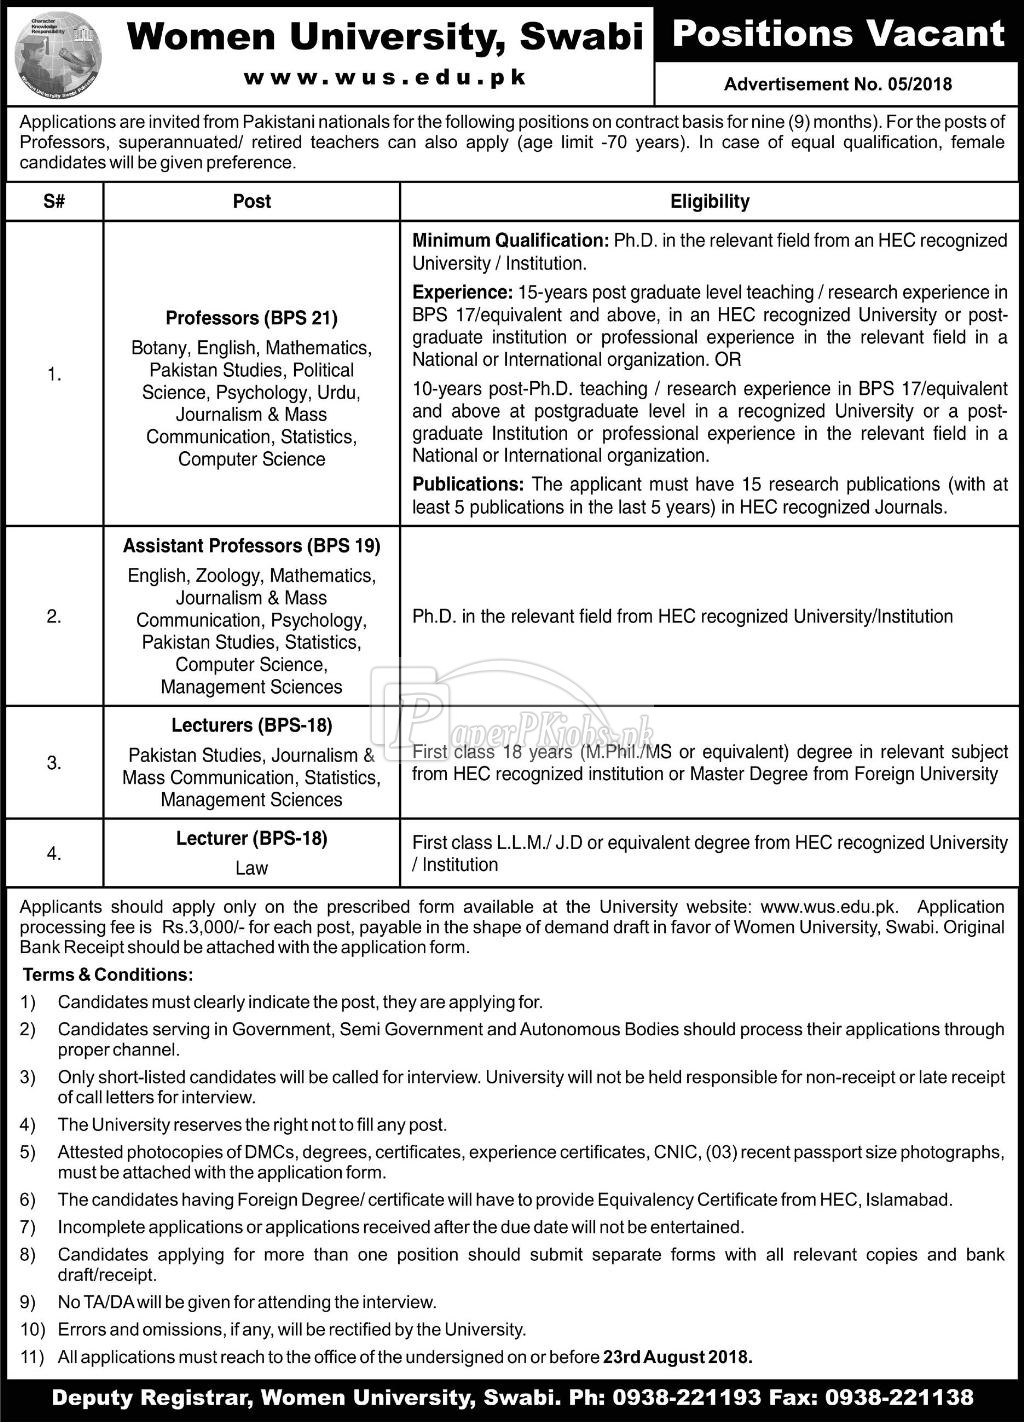 Women University Swabi Jobs 2018